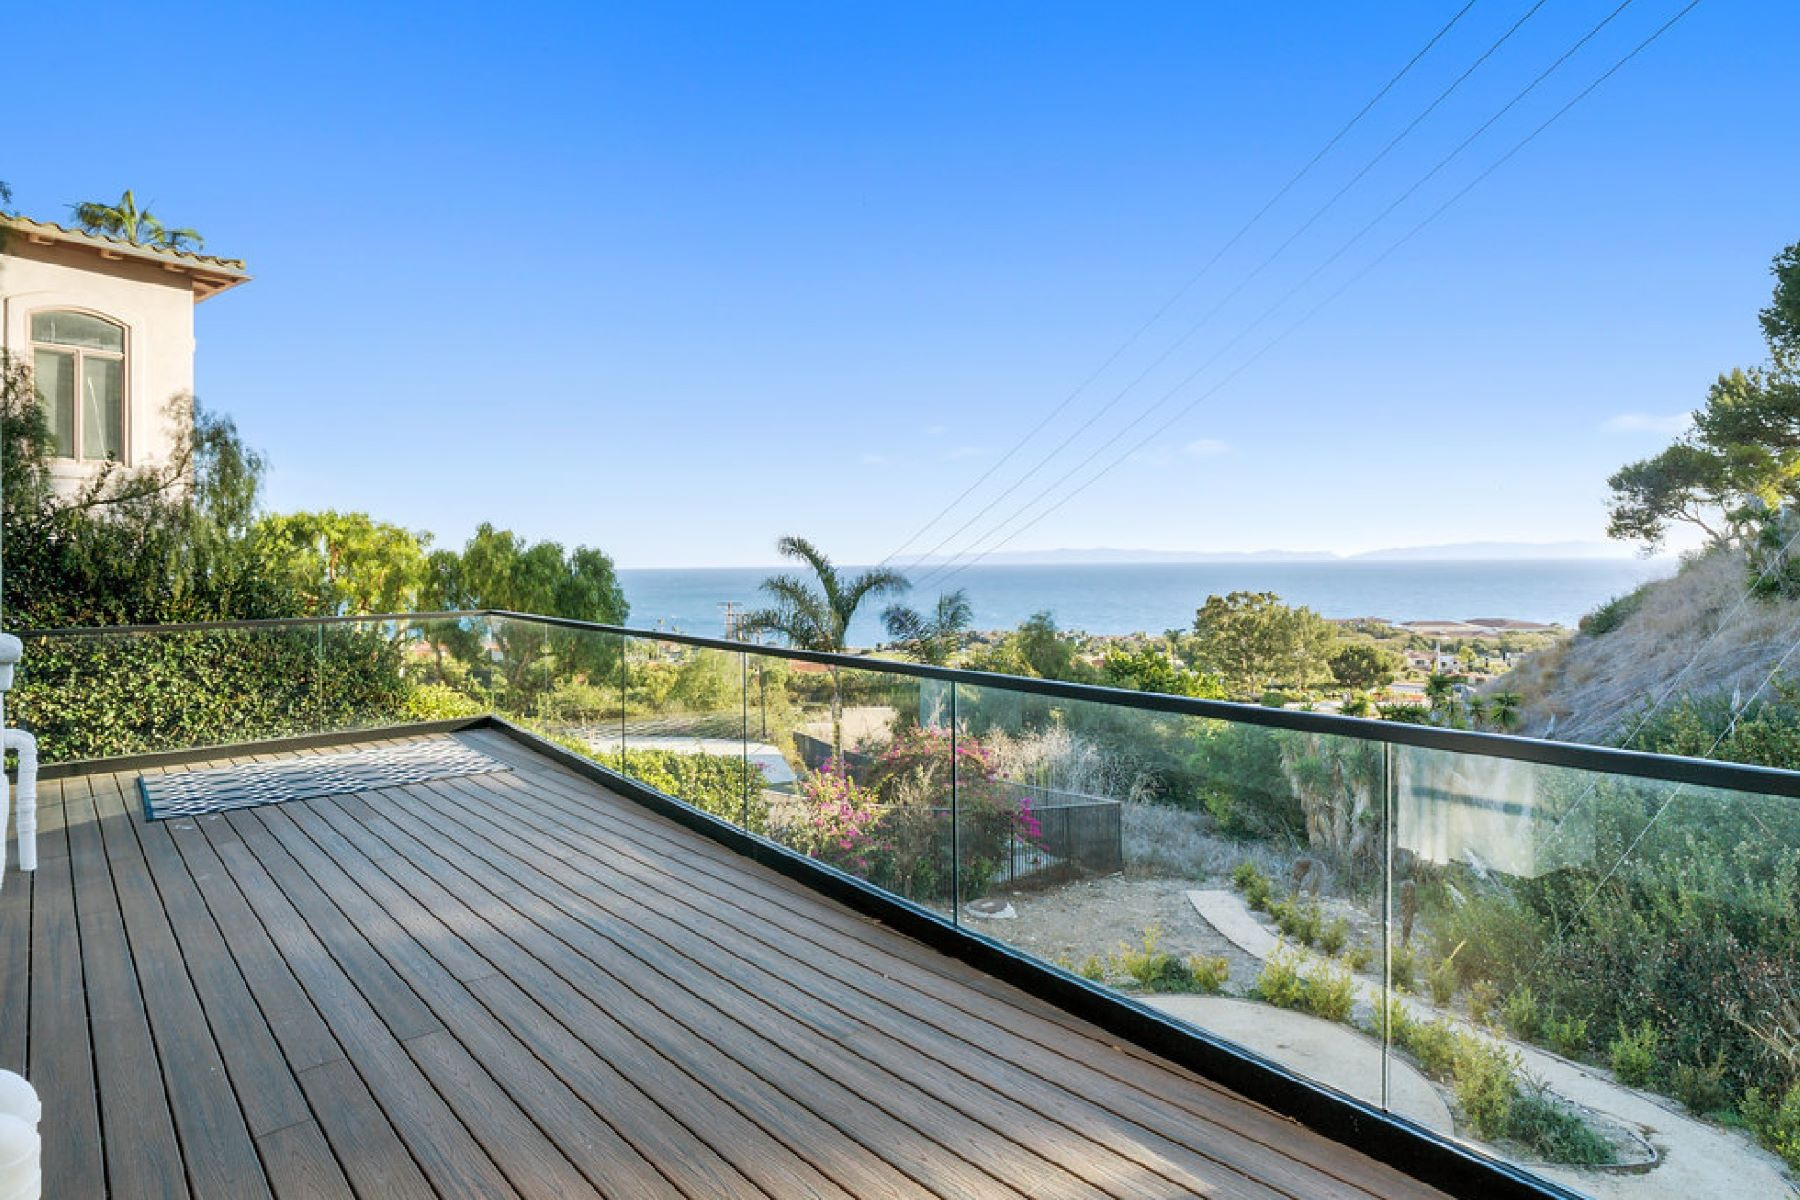 獨棟家庭住宅 為 出售 在 Wonderful custom Mediterranean home situated on a cul-de-sac street! 51 Albero Court, Rancho Palos Verdes, 加利福尼亞州, 90275 美國